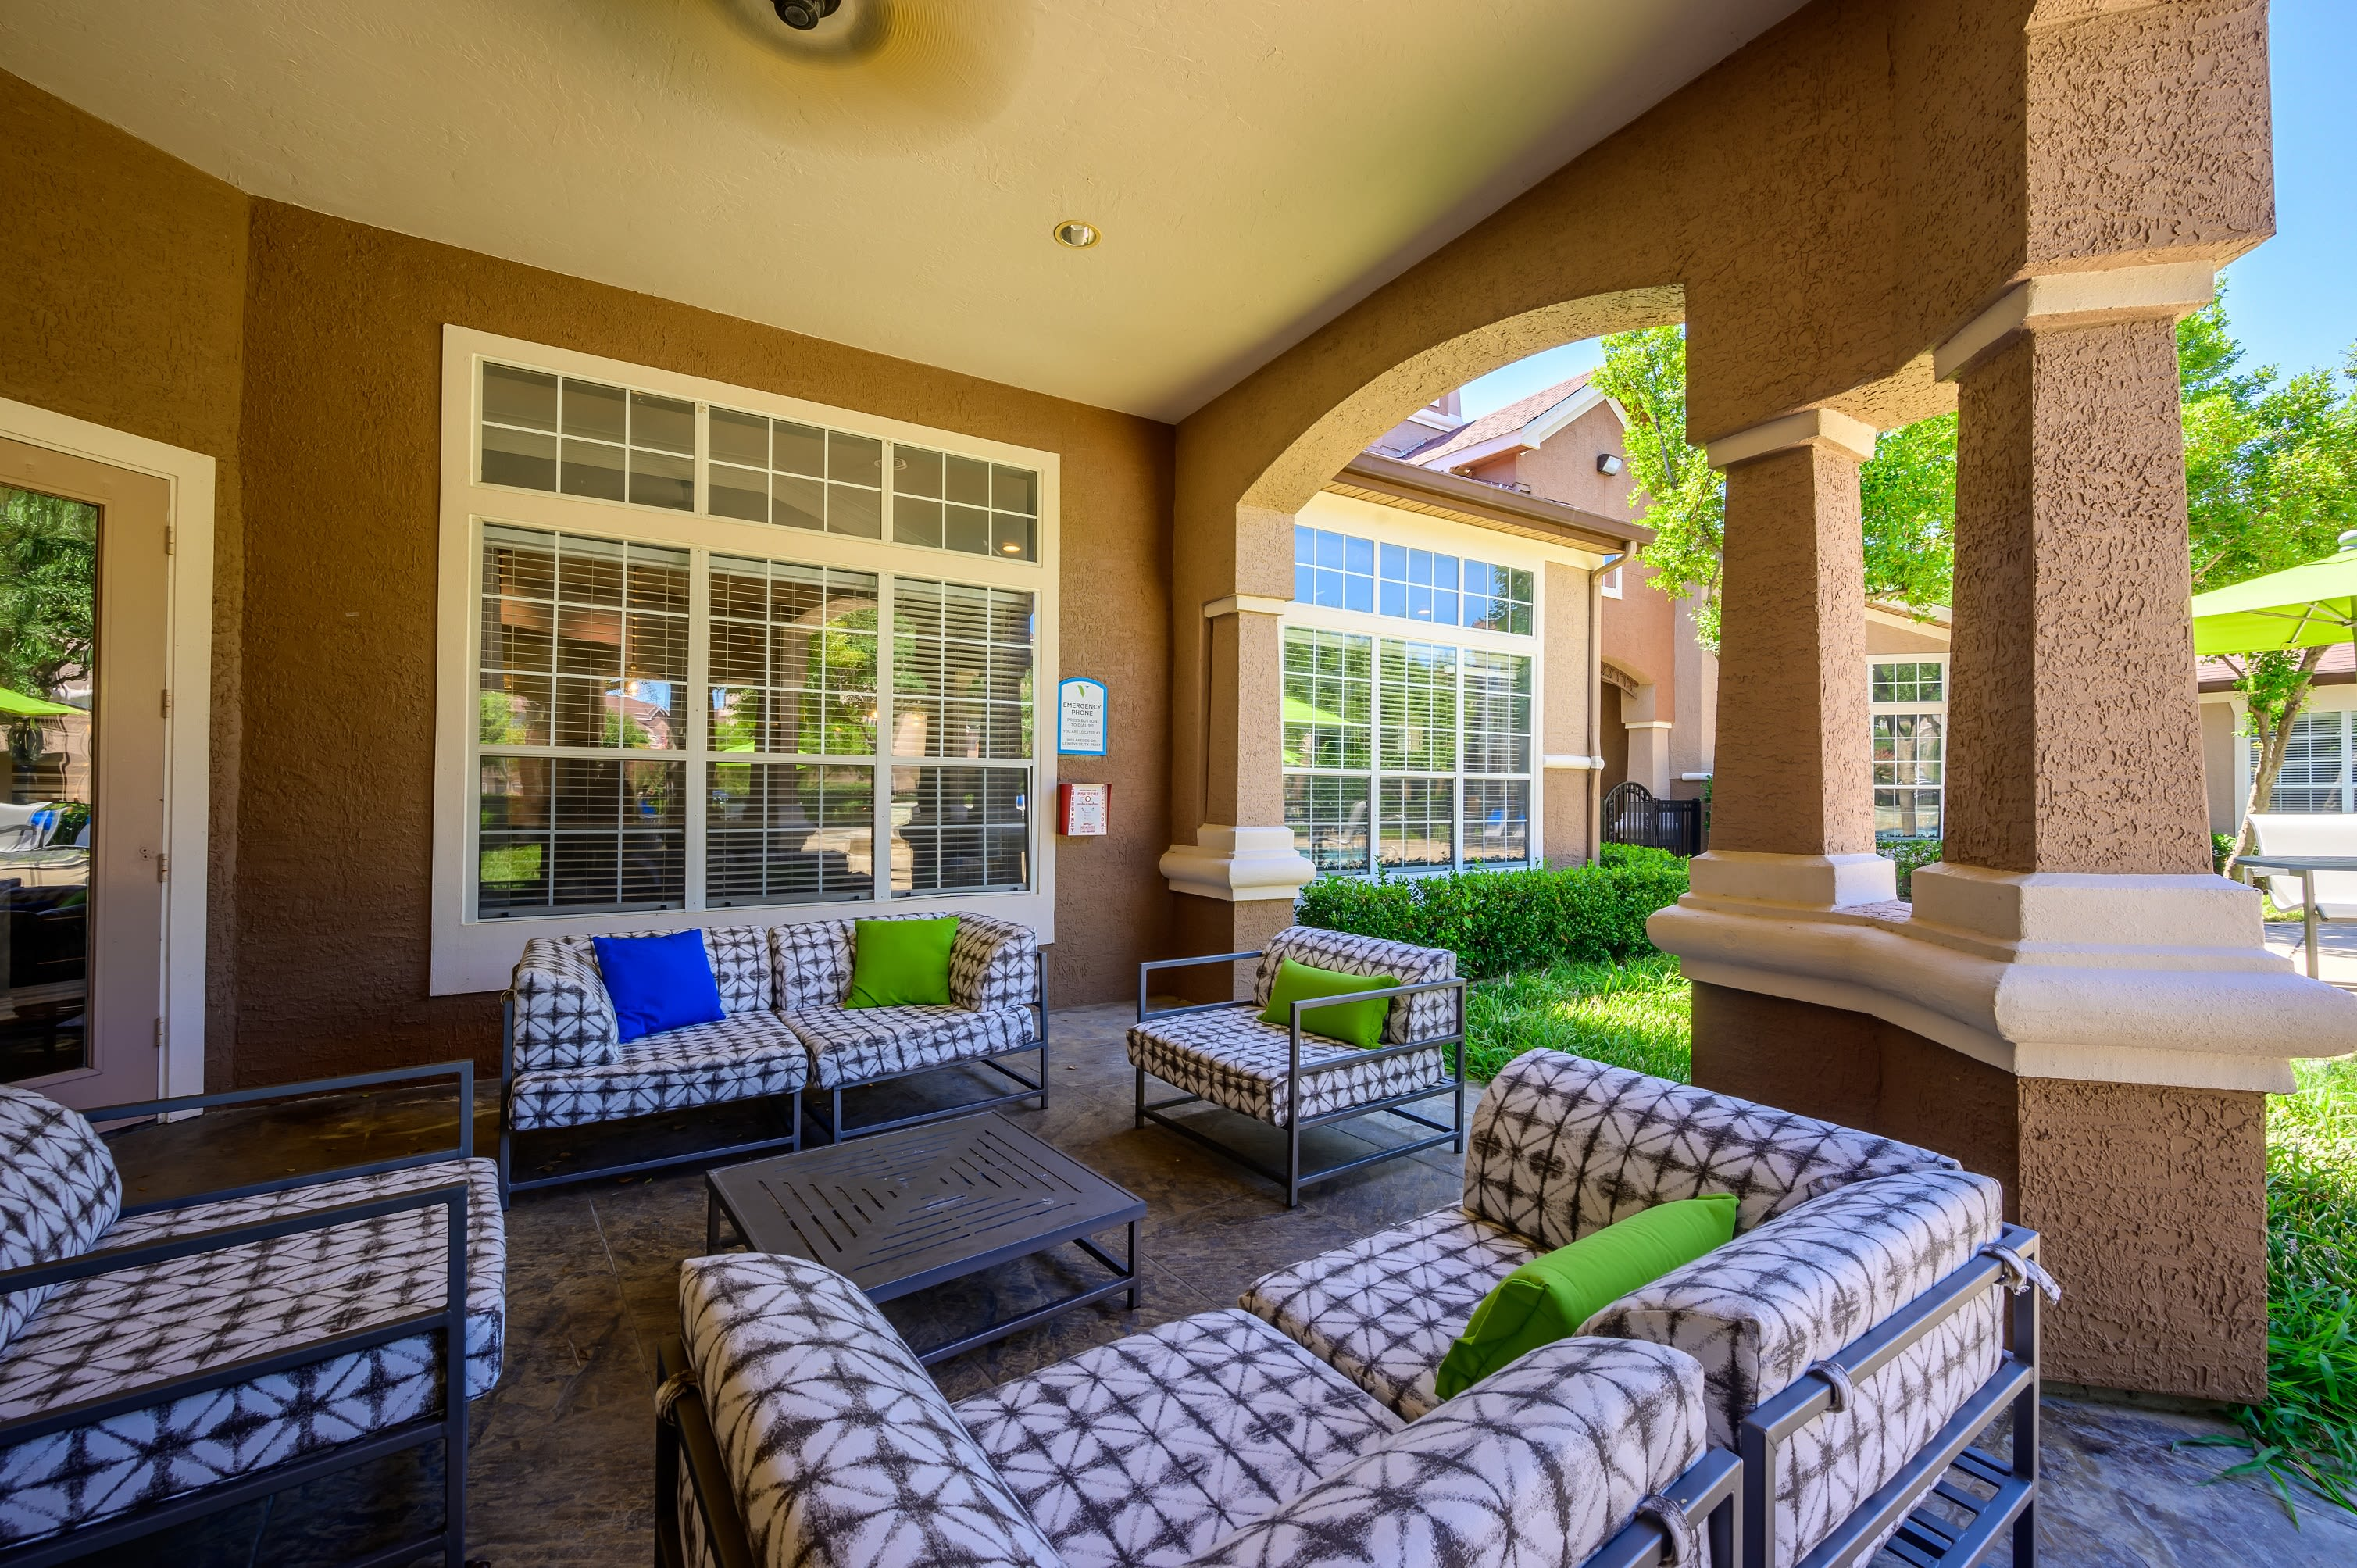 Courtyard with large swimming pool on a beautiful sunny day at The View at Lakeside in Lewisville, Texas